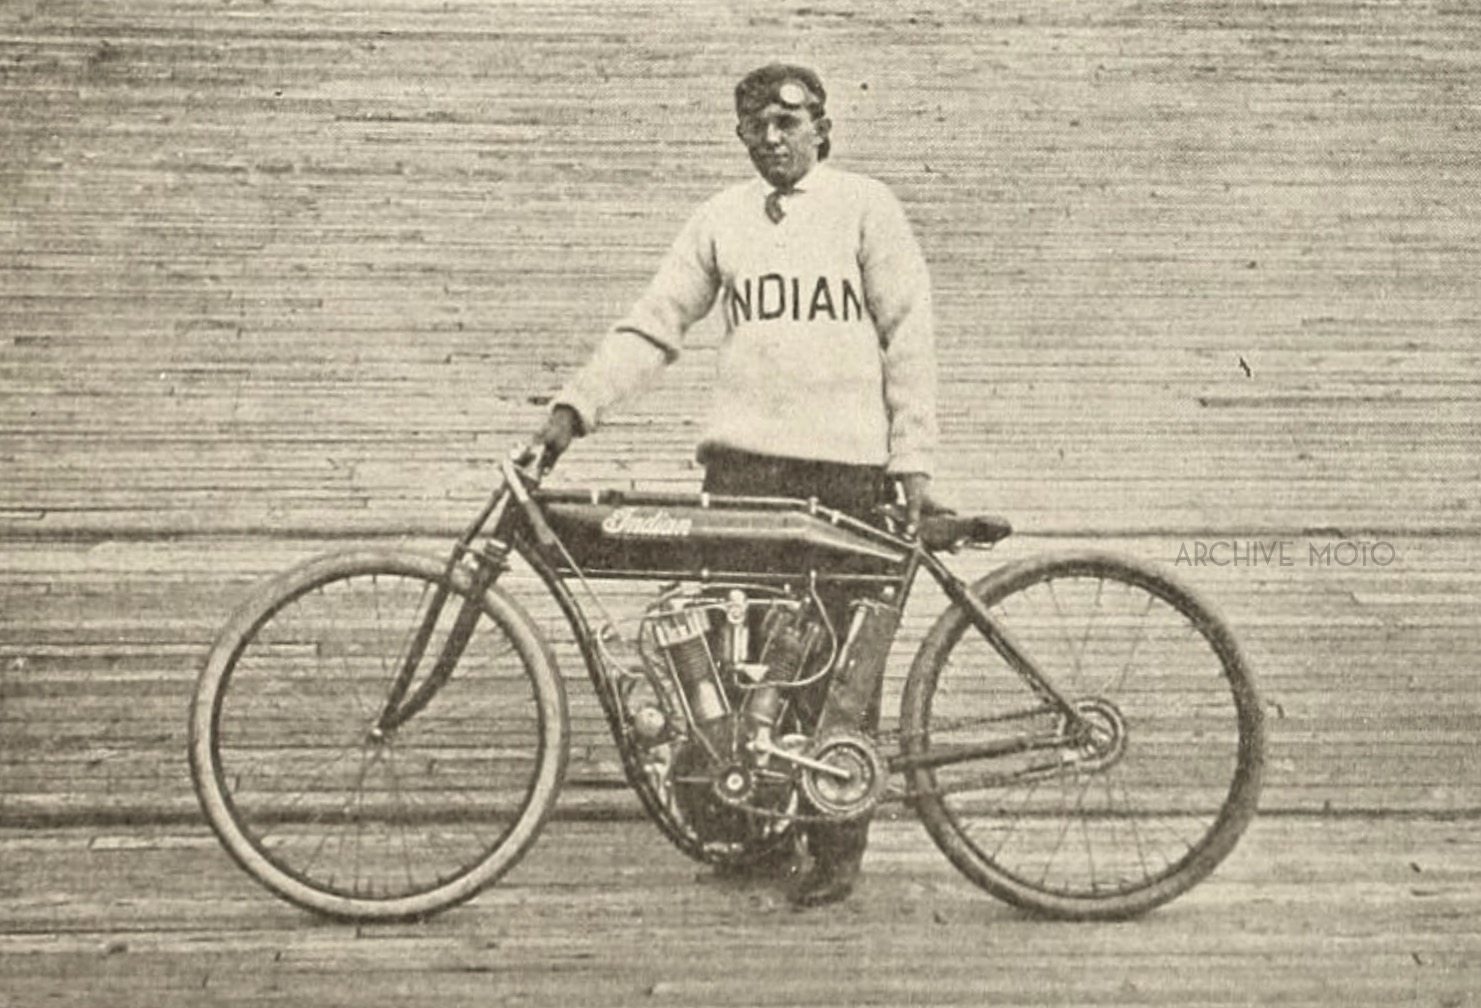 """Nineteen year old W.E. Hasha, aka Eddie, aka, """"The Texas Cyclone"""" inside the Springfield Stadium Motordrome earlier in 1911 before he traveled south to race in Birmingham against Stubbs, Mitchell, Balke, and DeRosier later fall. The machine he is standing with is the one that he most likely competed on for the events at the Alabama State Fairgrounds as he acquired his monstrous and elegant 8-Valve shortly after that event, just before the start of the 1912 season in Los Angeles."""